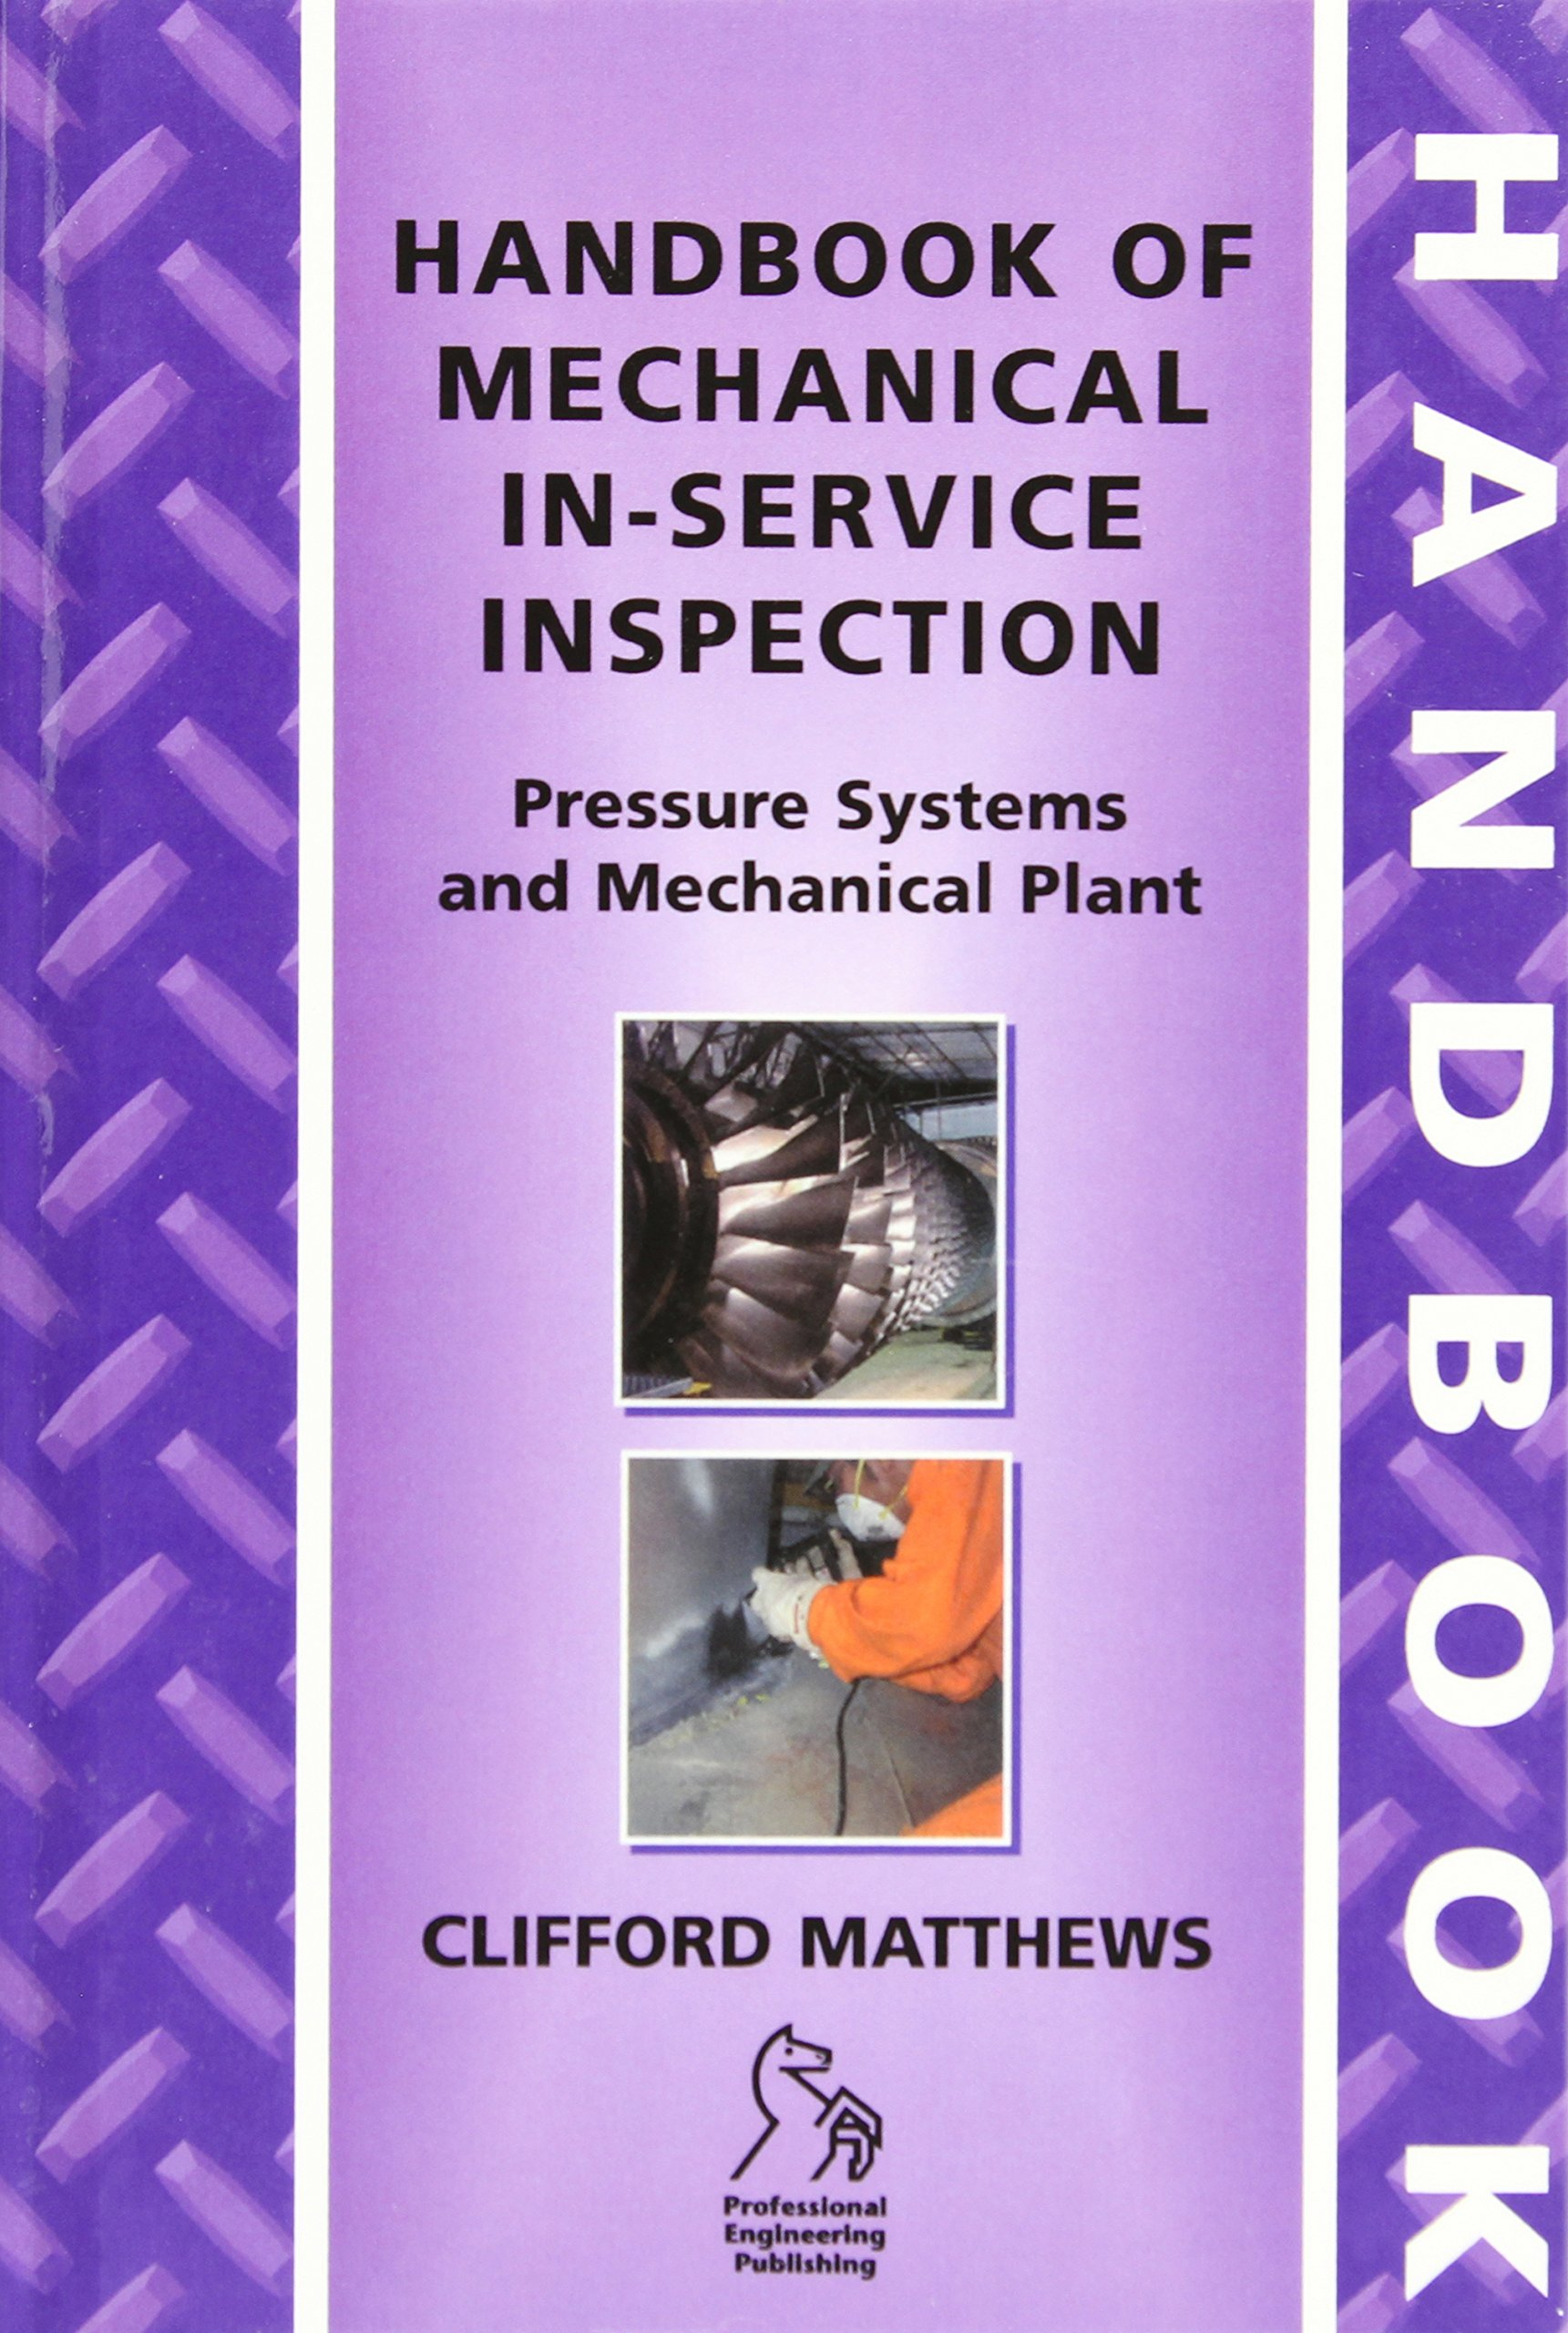 Buy Handbook of Mechanical In-Service Inspection: Pressure Systems and  Mechanical Plant Book Online at Low Prices in India | Handbook of Mechanical  ...